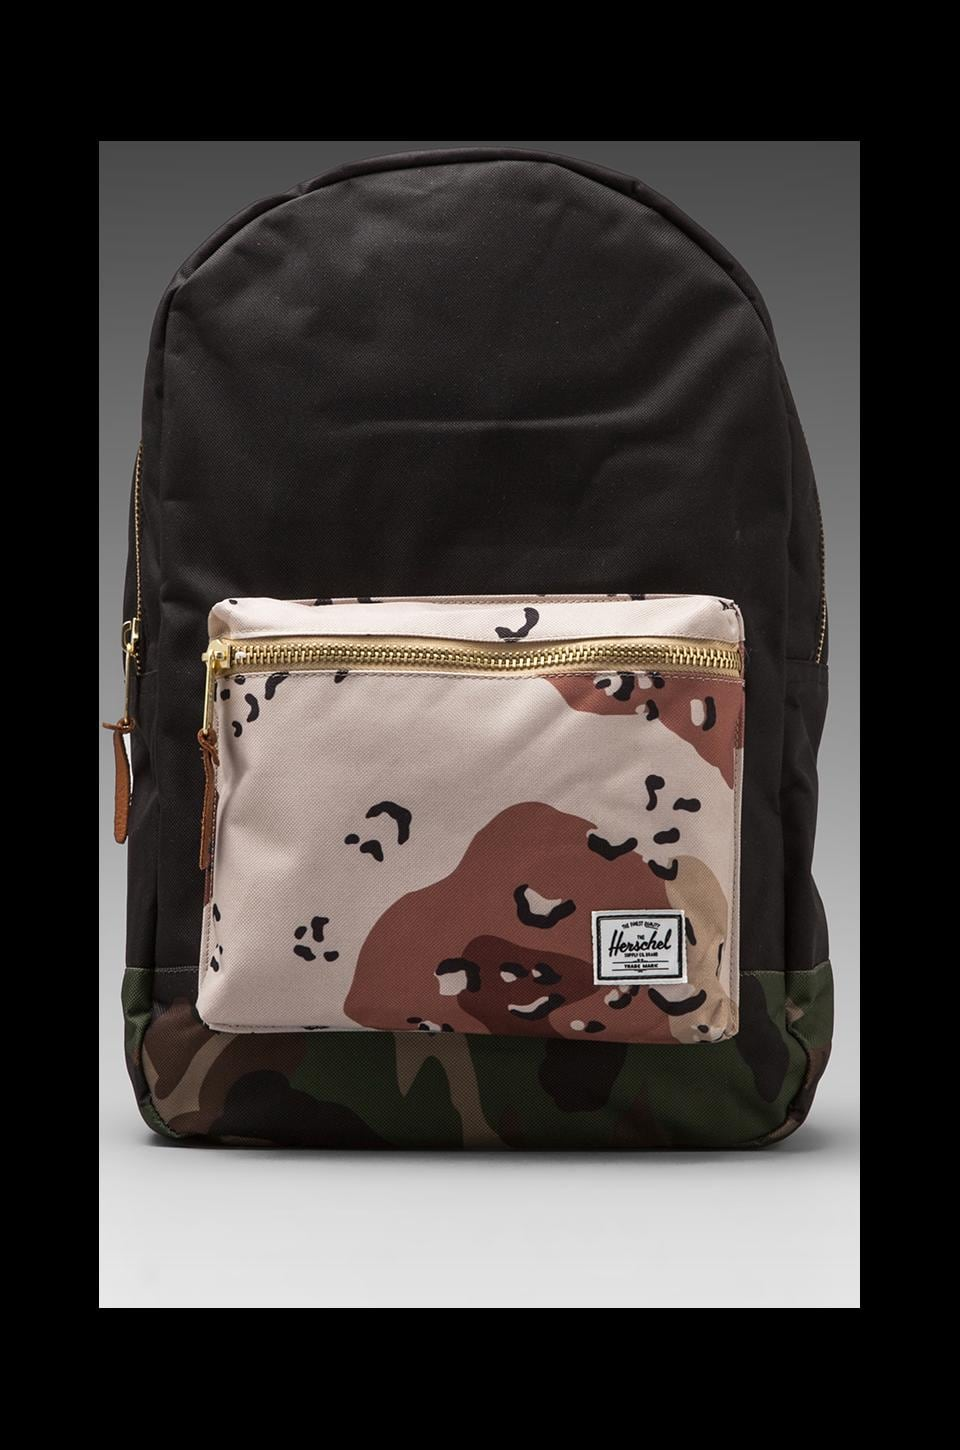 Herschel Supply Co. Sac à dos Settlement en Black/Desert Camo/Woodland Camo